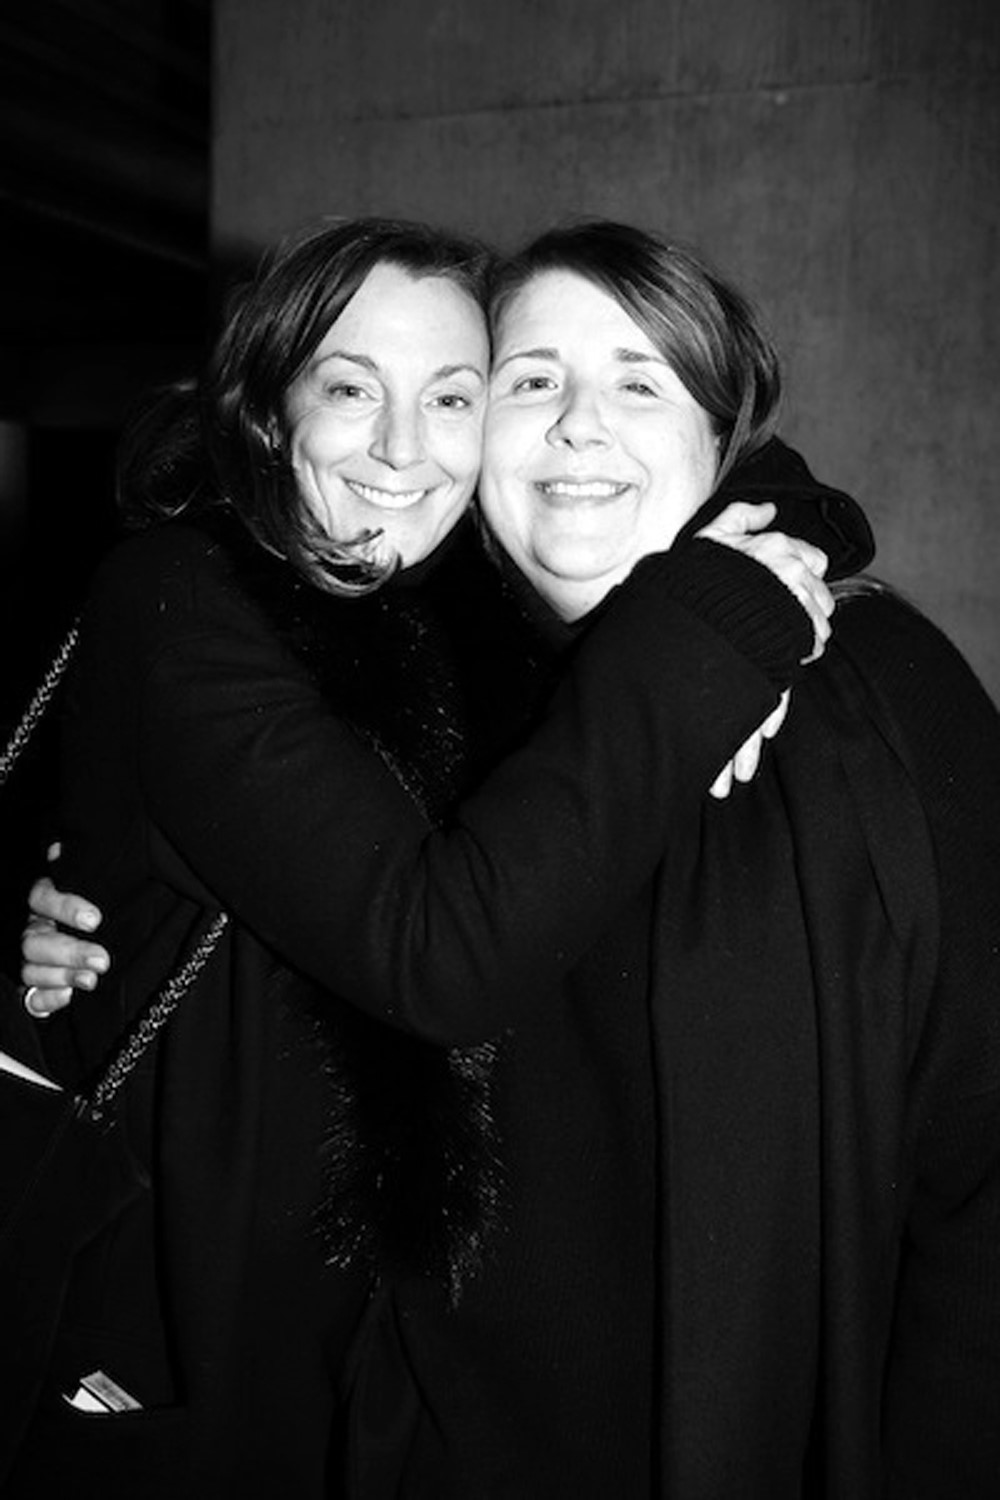 Wilson with the designer Phoebe Philo, a former student